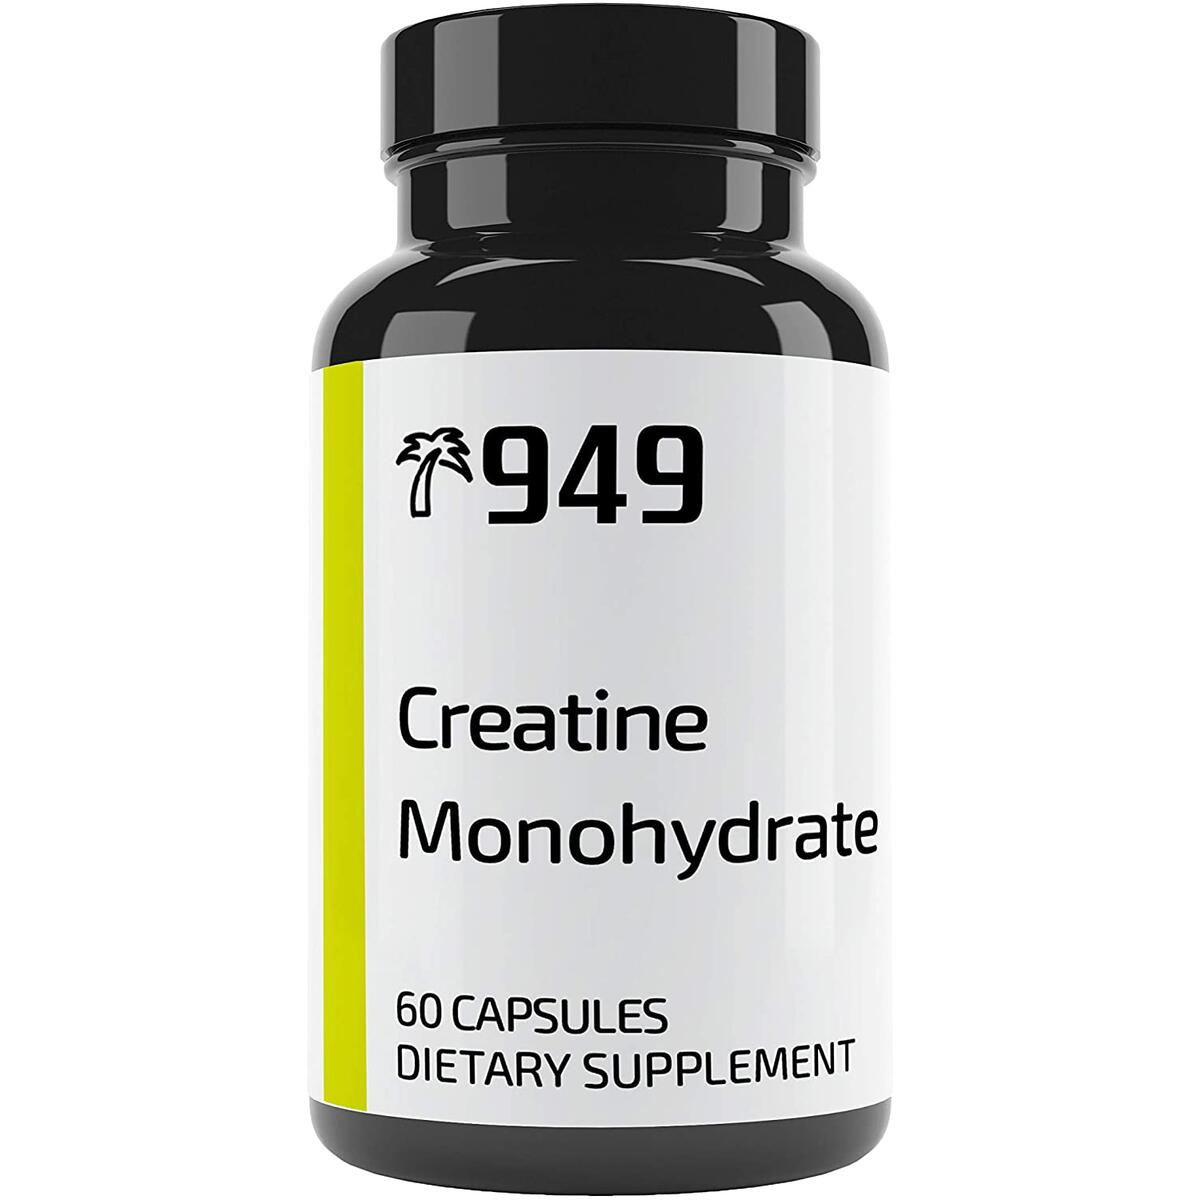 Creatine Monohydrate, Under 10 Dollars, 60 Capsules, Post-Workout Recovery, Muscle Building, Made in USA, No Additives or Fillers, Lab-Tested, Satisfaction Guaranteed, 949*